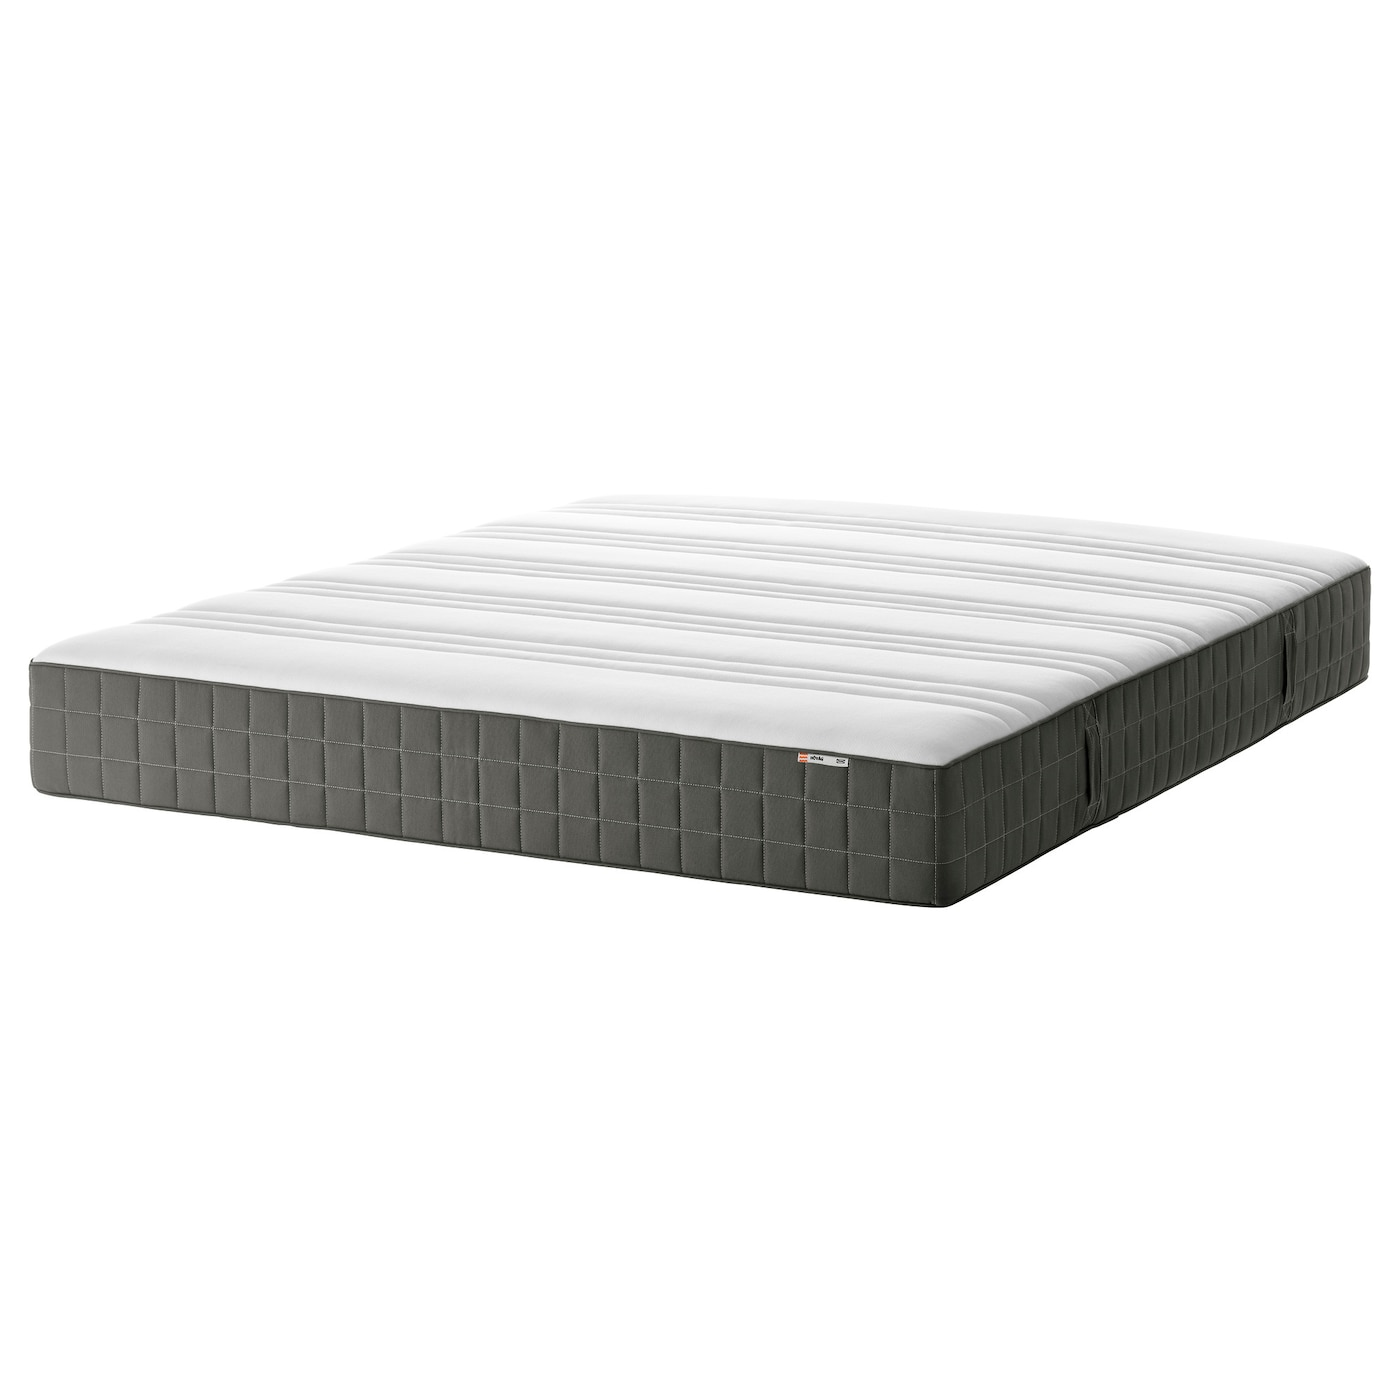 h v g matelas ressorts ensach s mi ferme gris fonc 160 x 200 cm ikea. Black Bedroom Furniture Sets. Home Design Ideas